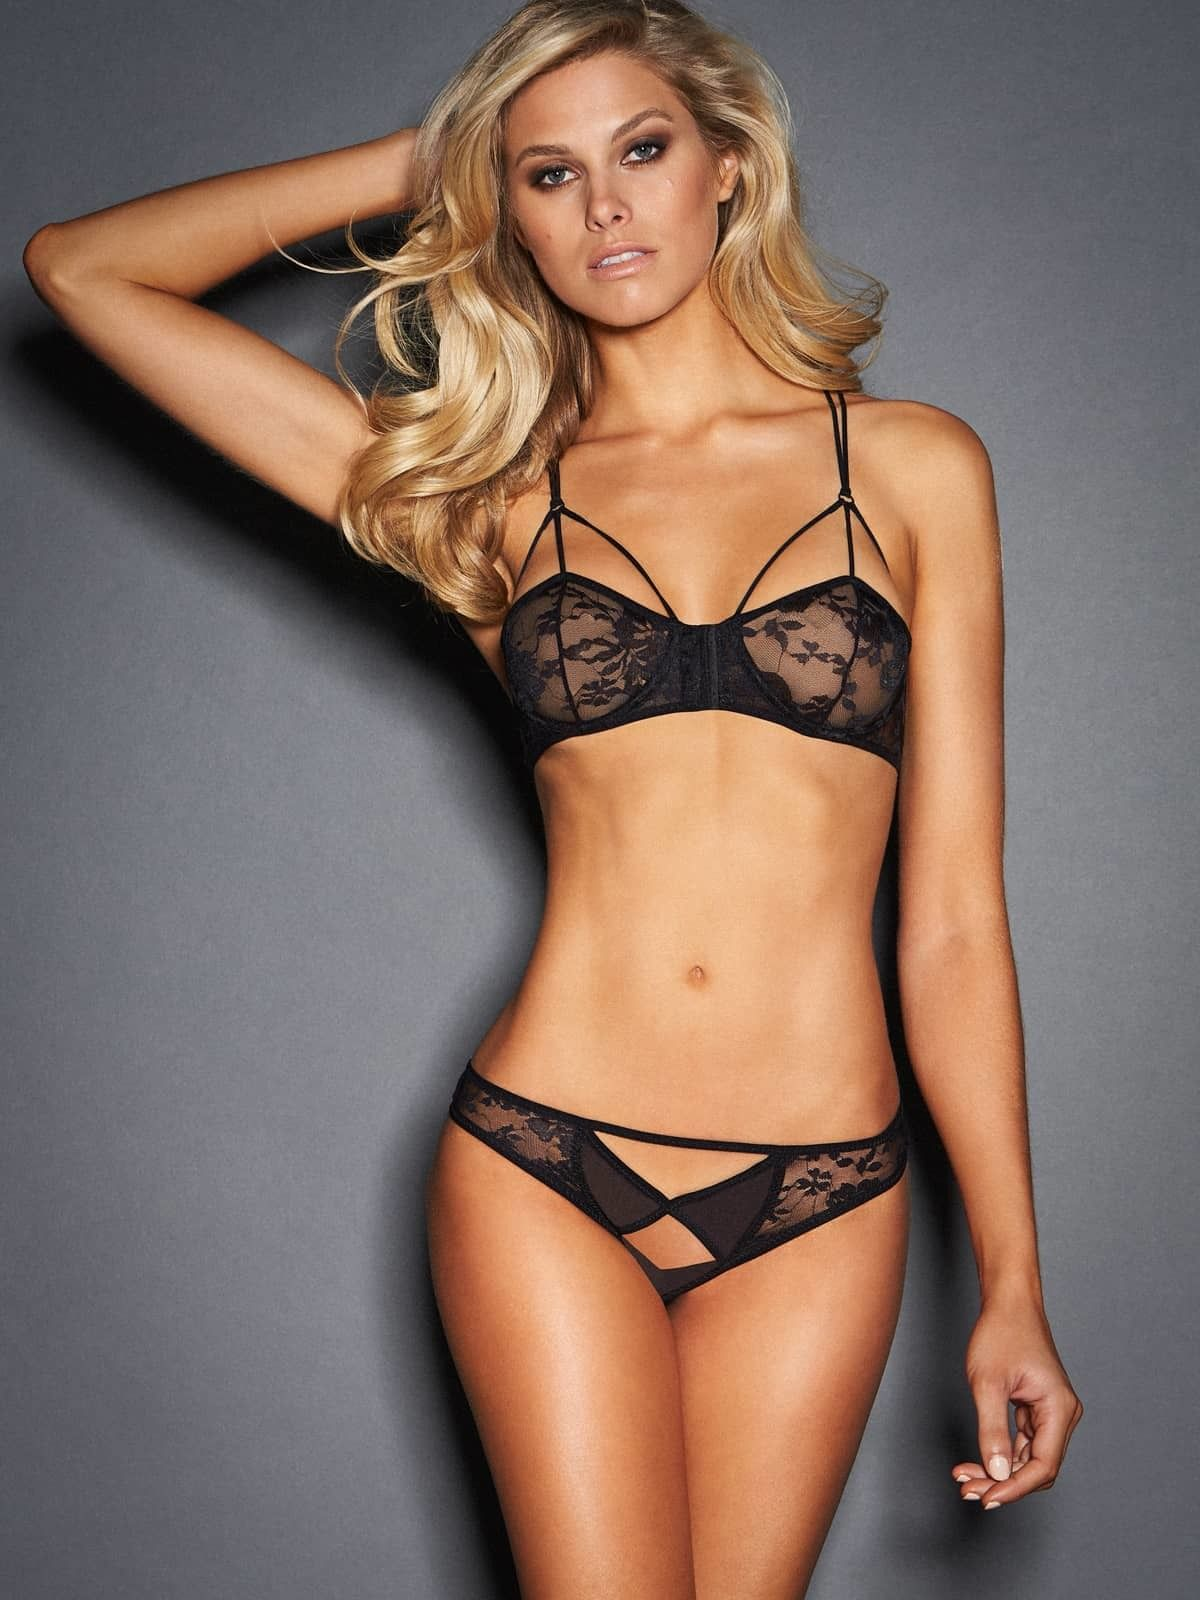 7db1dd5092e The Luisa lingerie set is ultra sexy with its revealing bra and panty. The  Luisa bra features sheer floral lace demi cups with strappy details in the  front ...